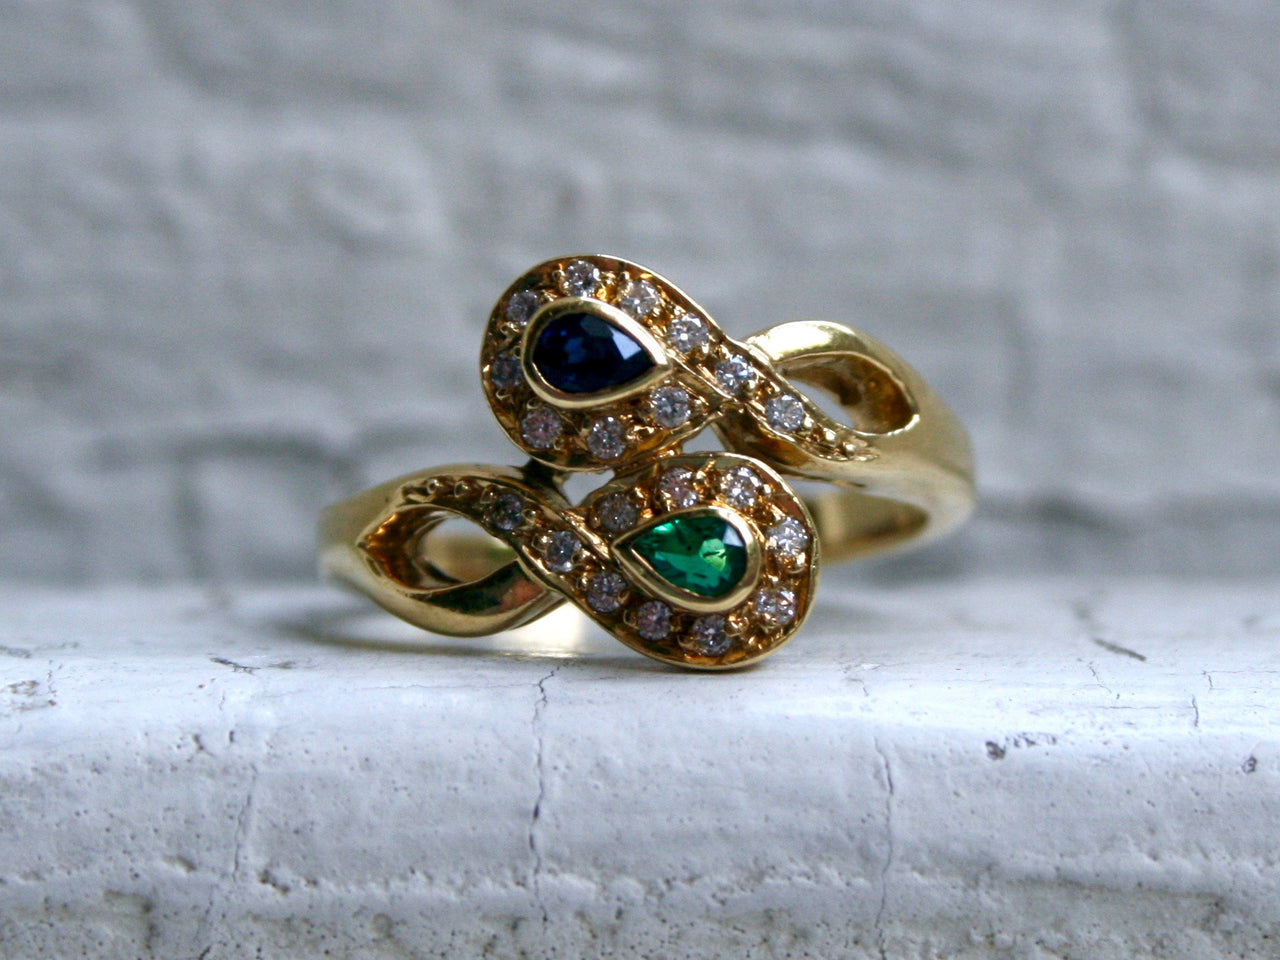 Vintage 18K Yellow Gold Emerald, Sapphire, and Diamond Ring by H. Stern- 0.80ct.